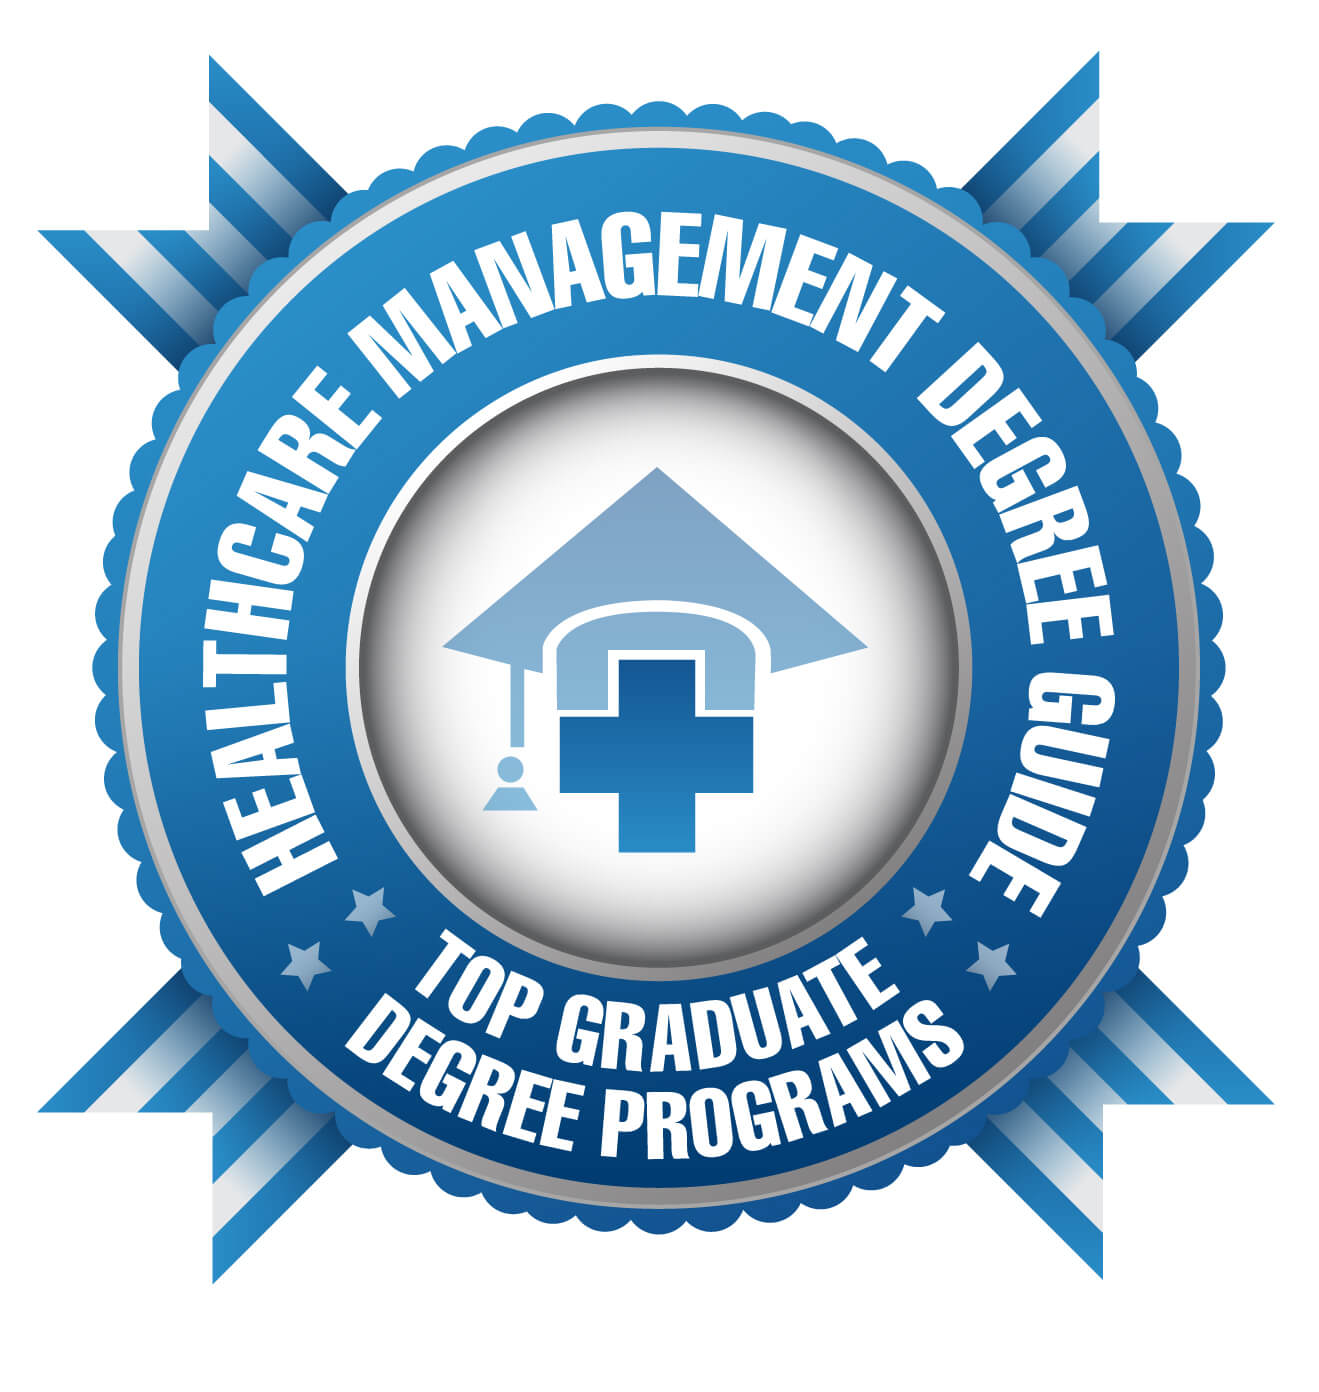 Health Care Management >> Top 20 Graduate Programs In Health Care Management In The South